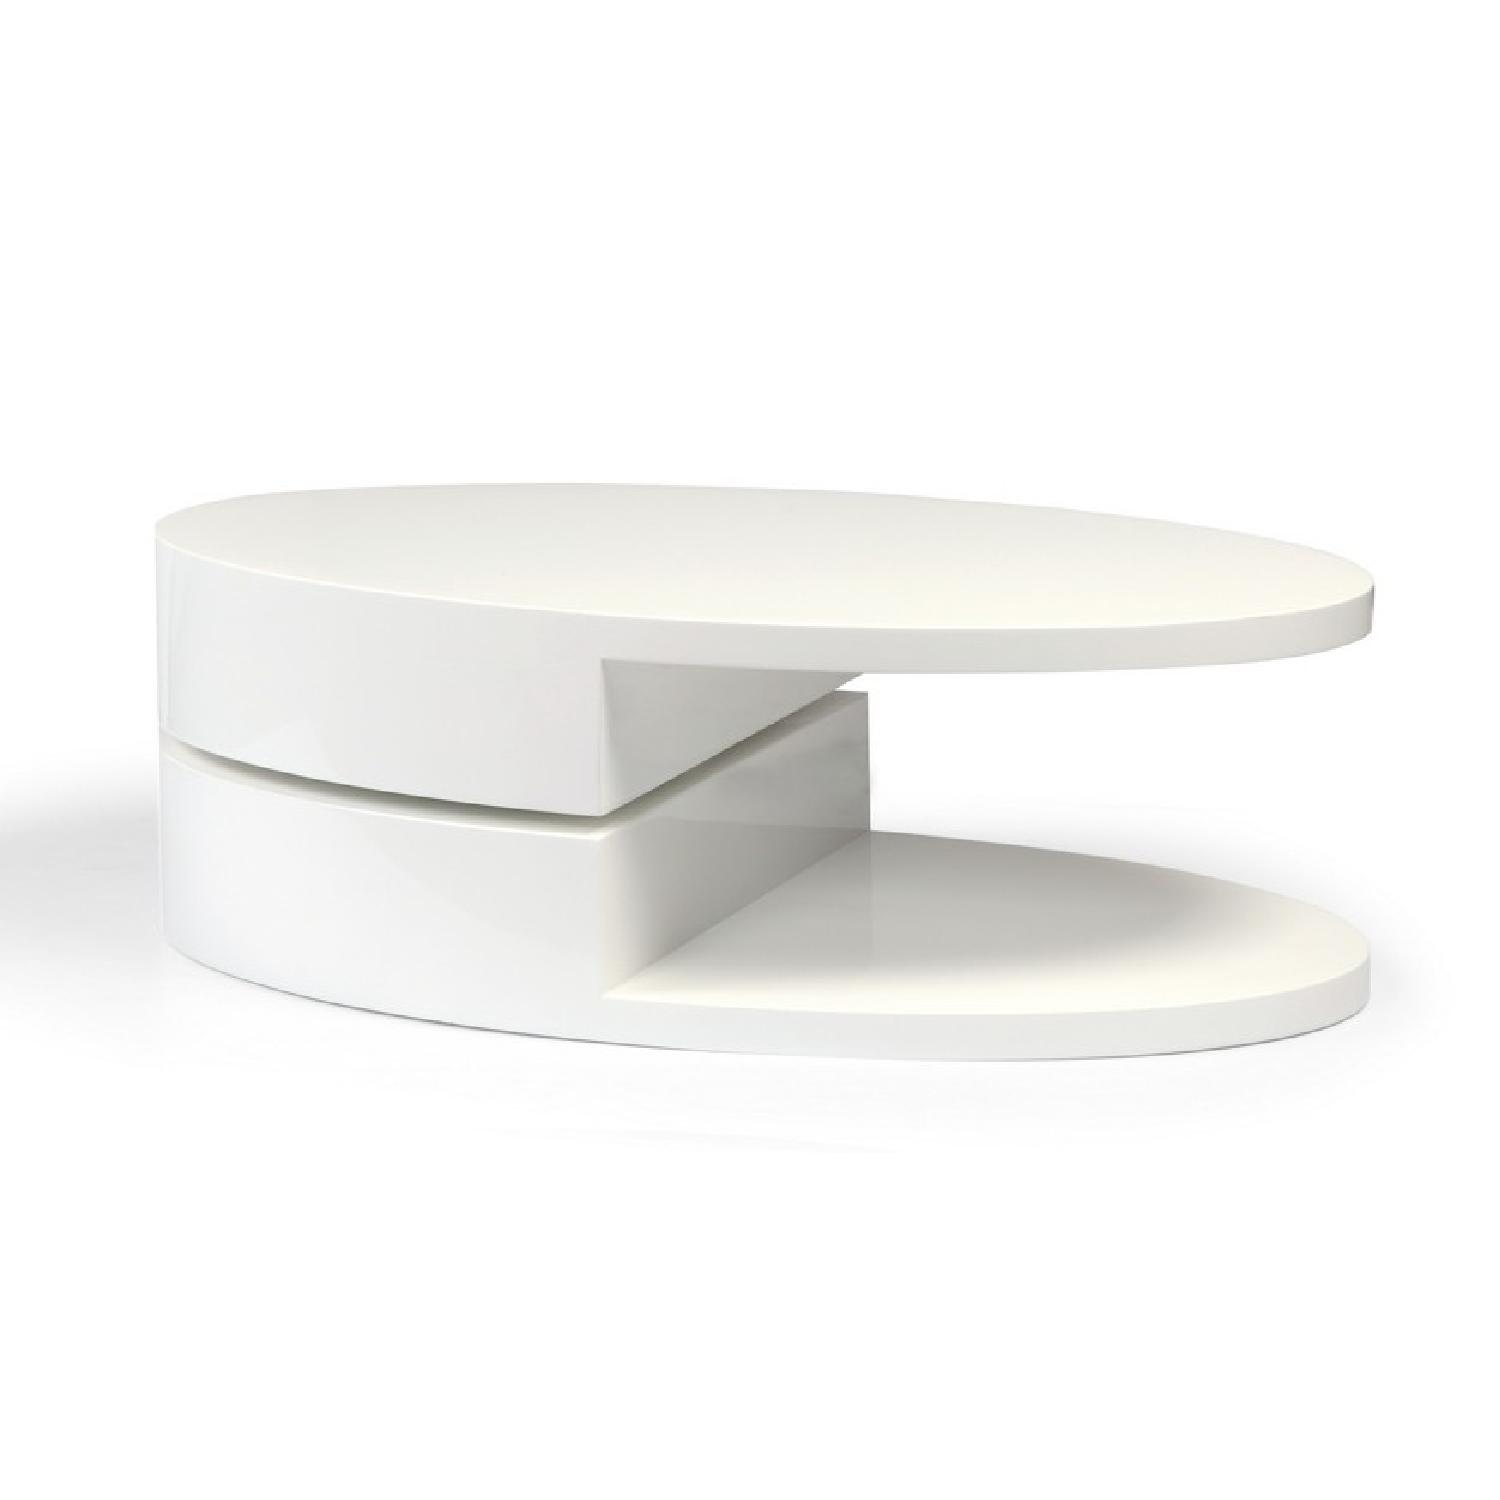 Modern Swivel Coffee Table.Modern High Gloss White Coffee Table W Swivel Oval Top Sc